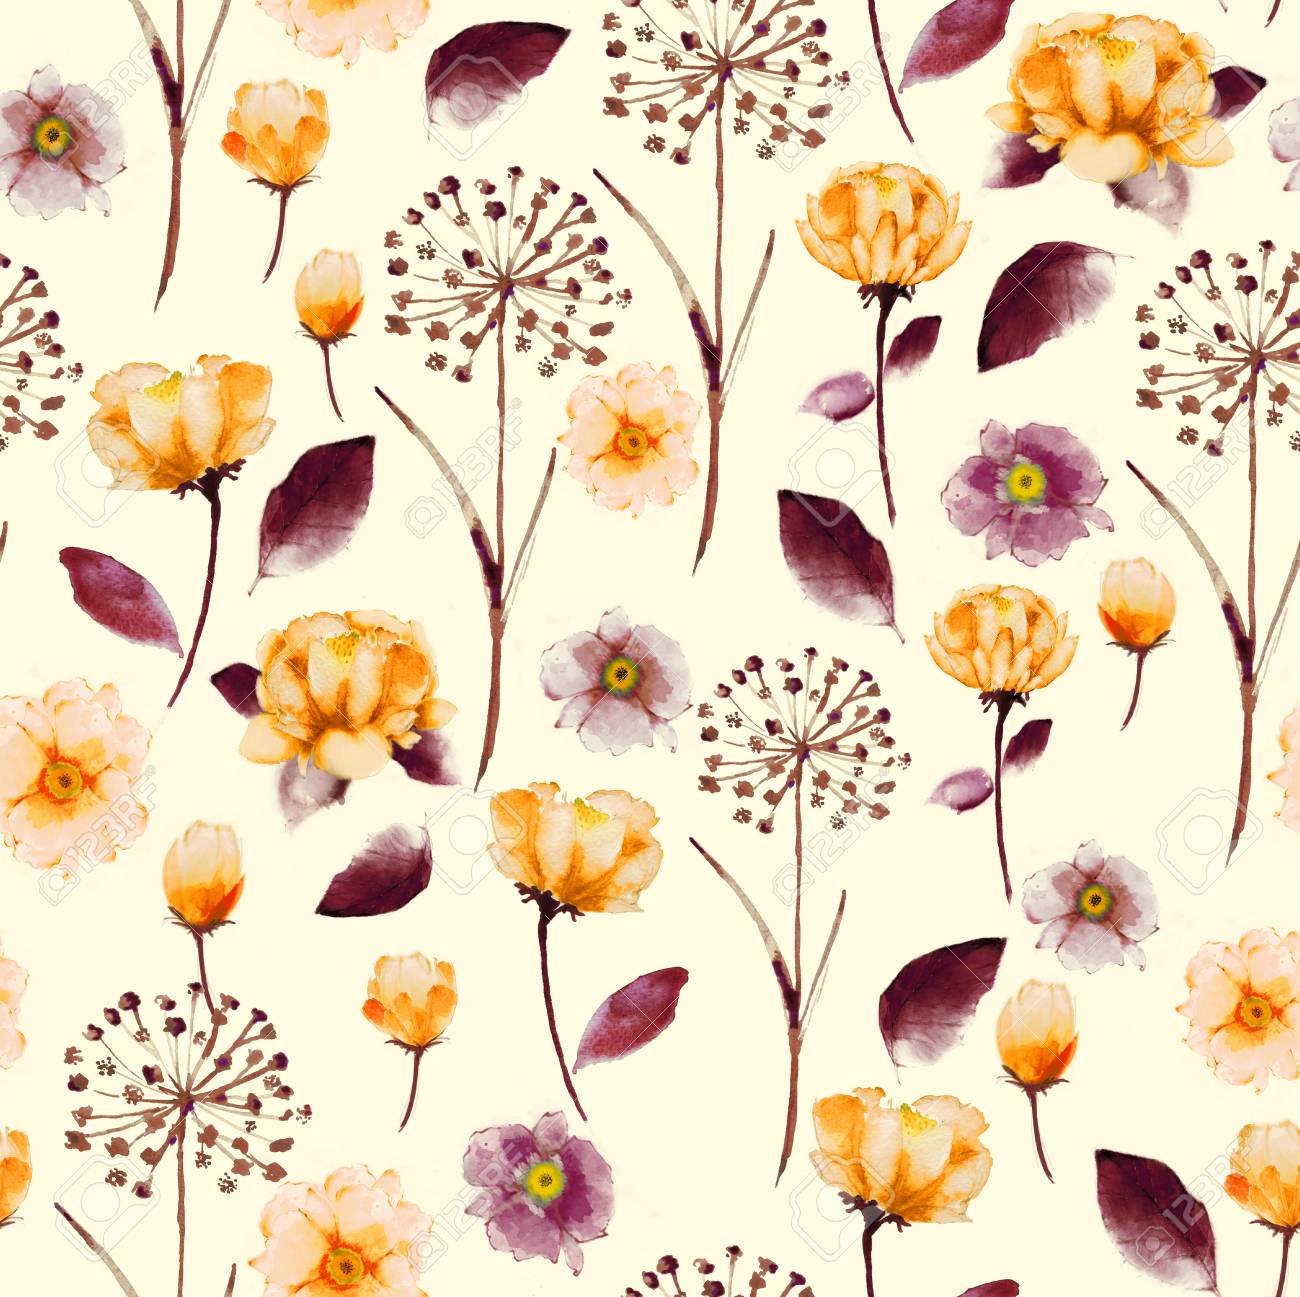 Seamless Bright Vintage Watercolor Floral Pattern Delicate Flower